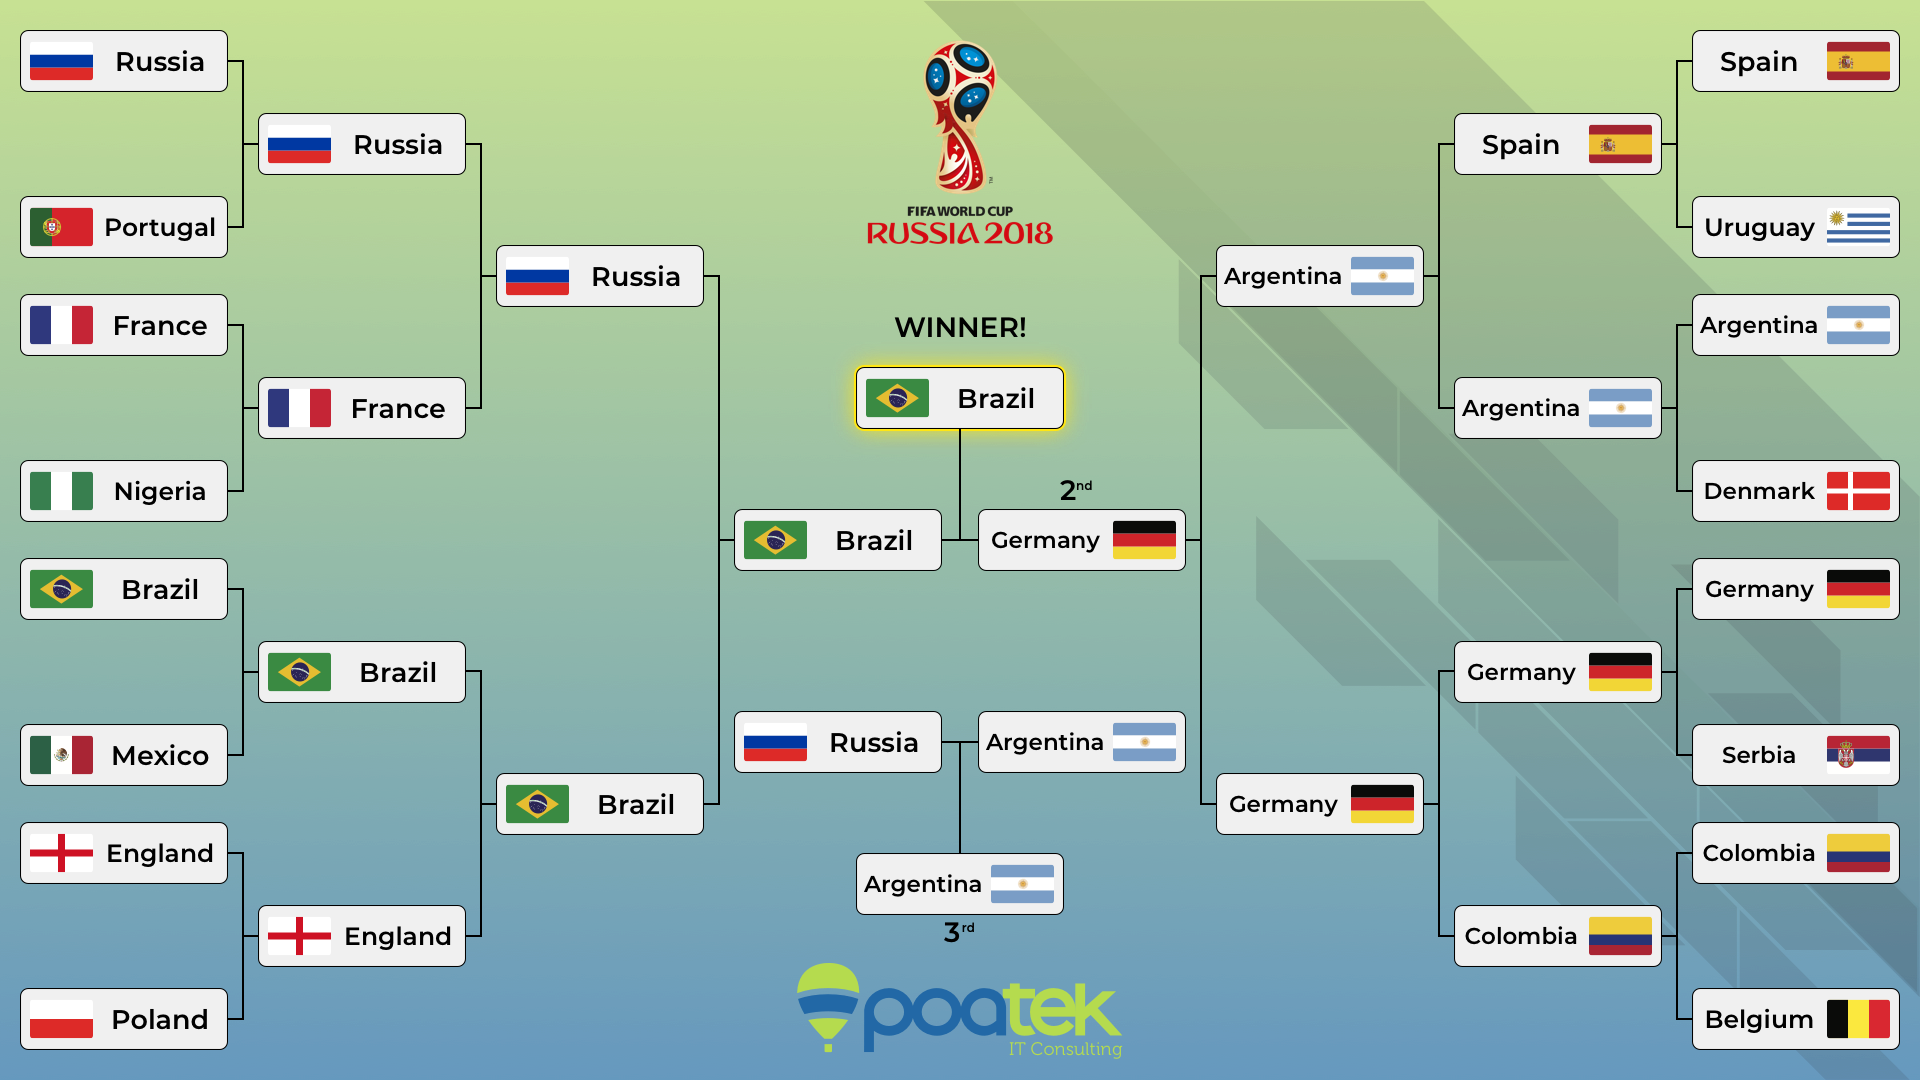 We used Neural Networks to predict the 2018 World Cup champion